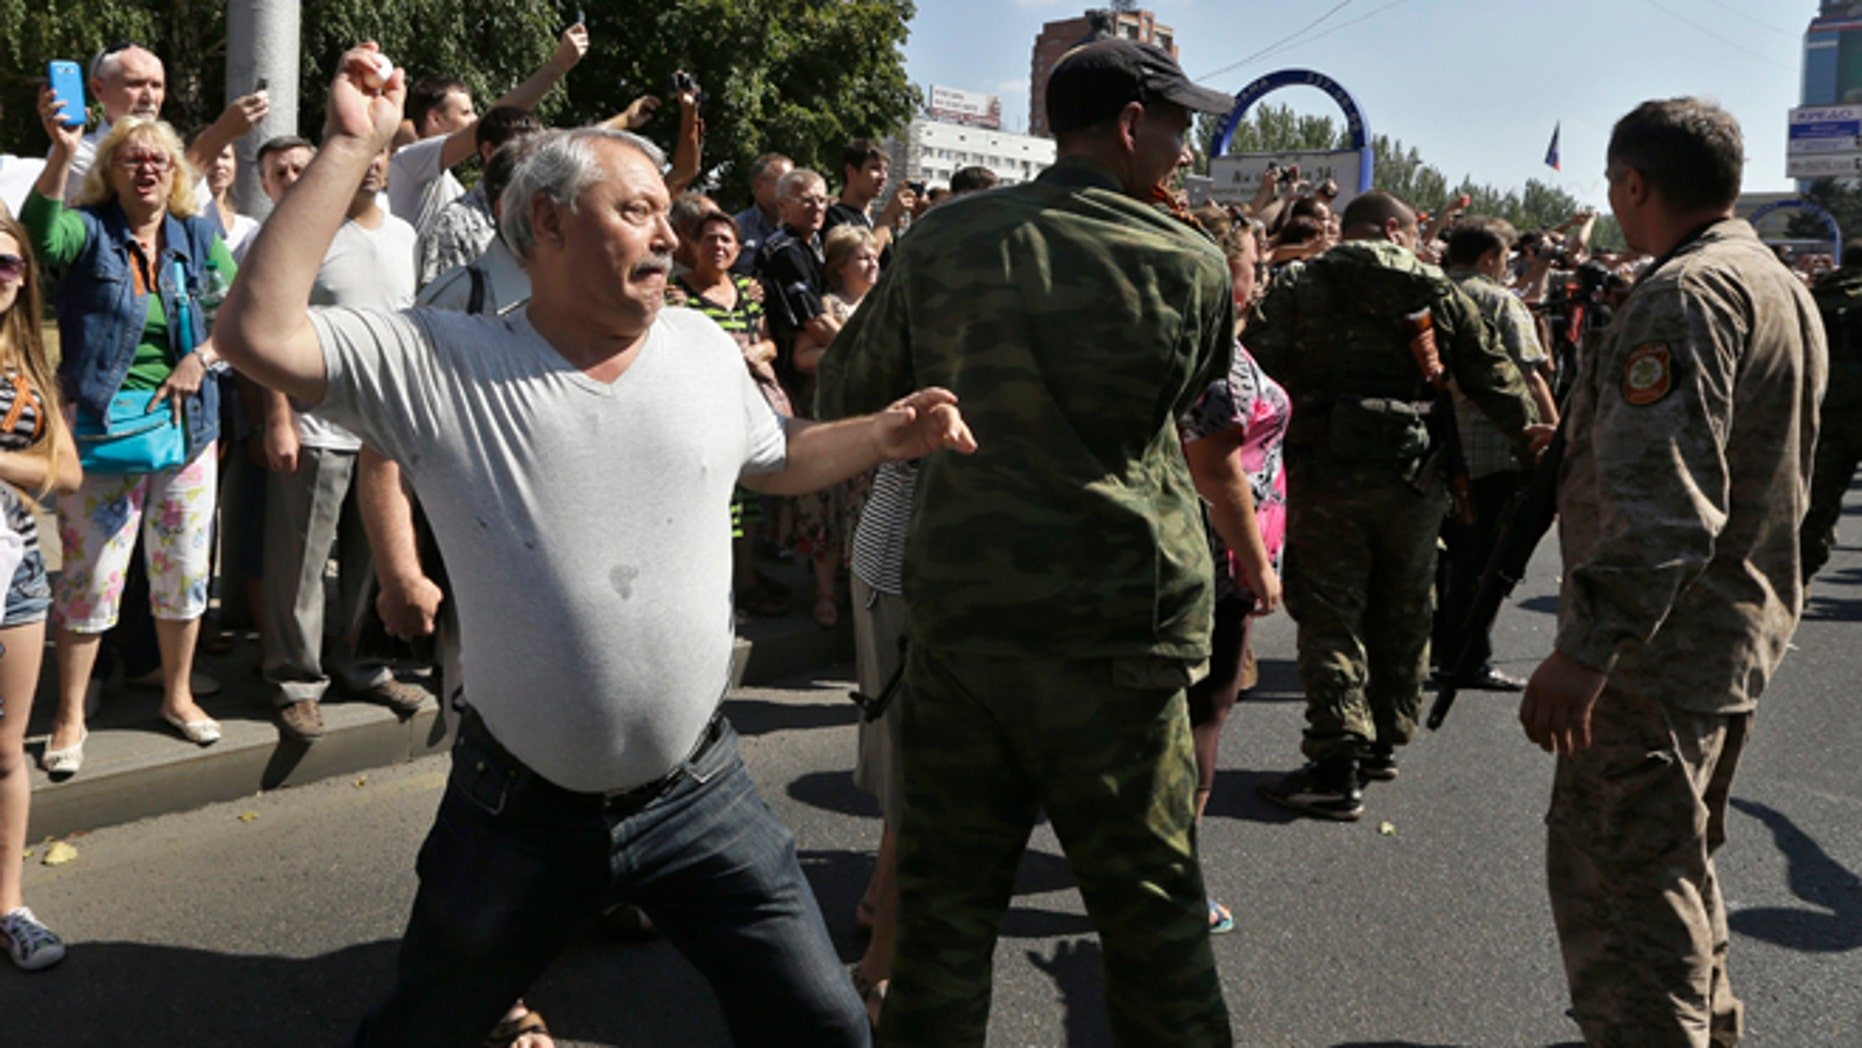 Aug. 24, 2014: A man throws an egg at captured Ukrainian army prisoners as they're escorted by Pro-Russian rebels in a central square in Donetsk, eastern Ukraine. (AP)